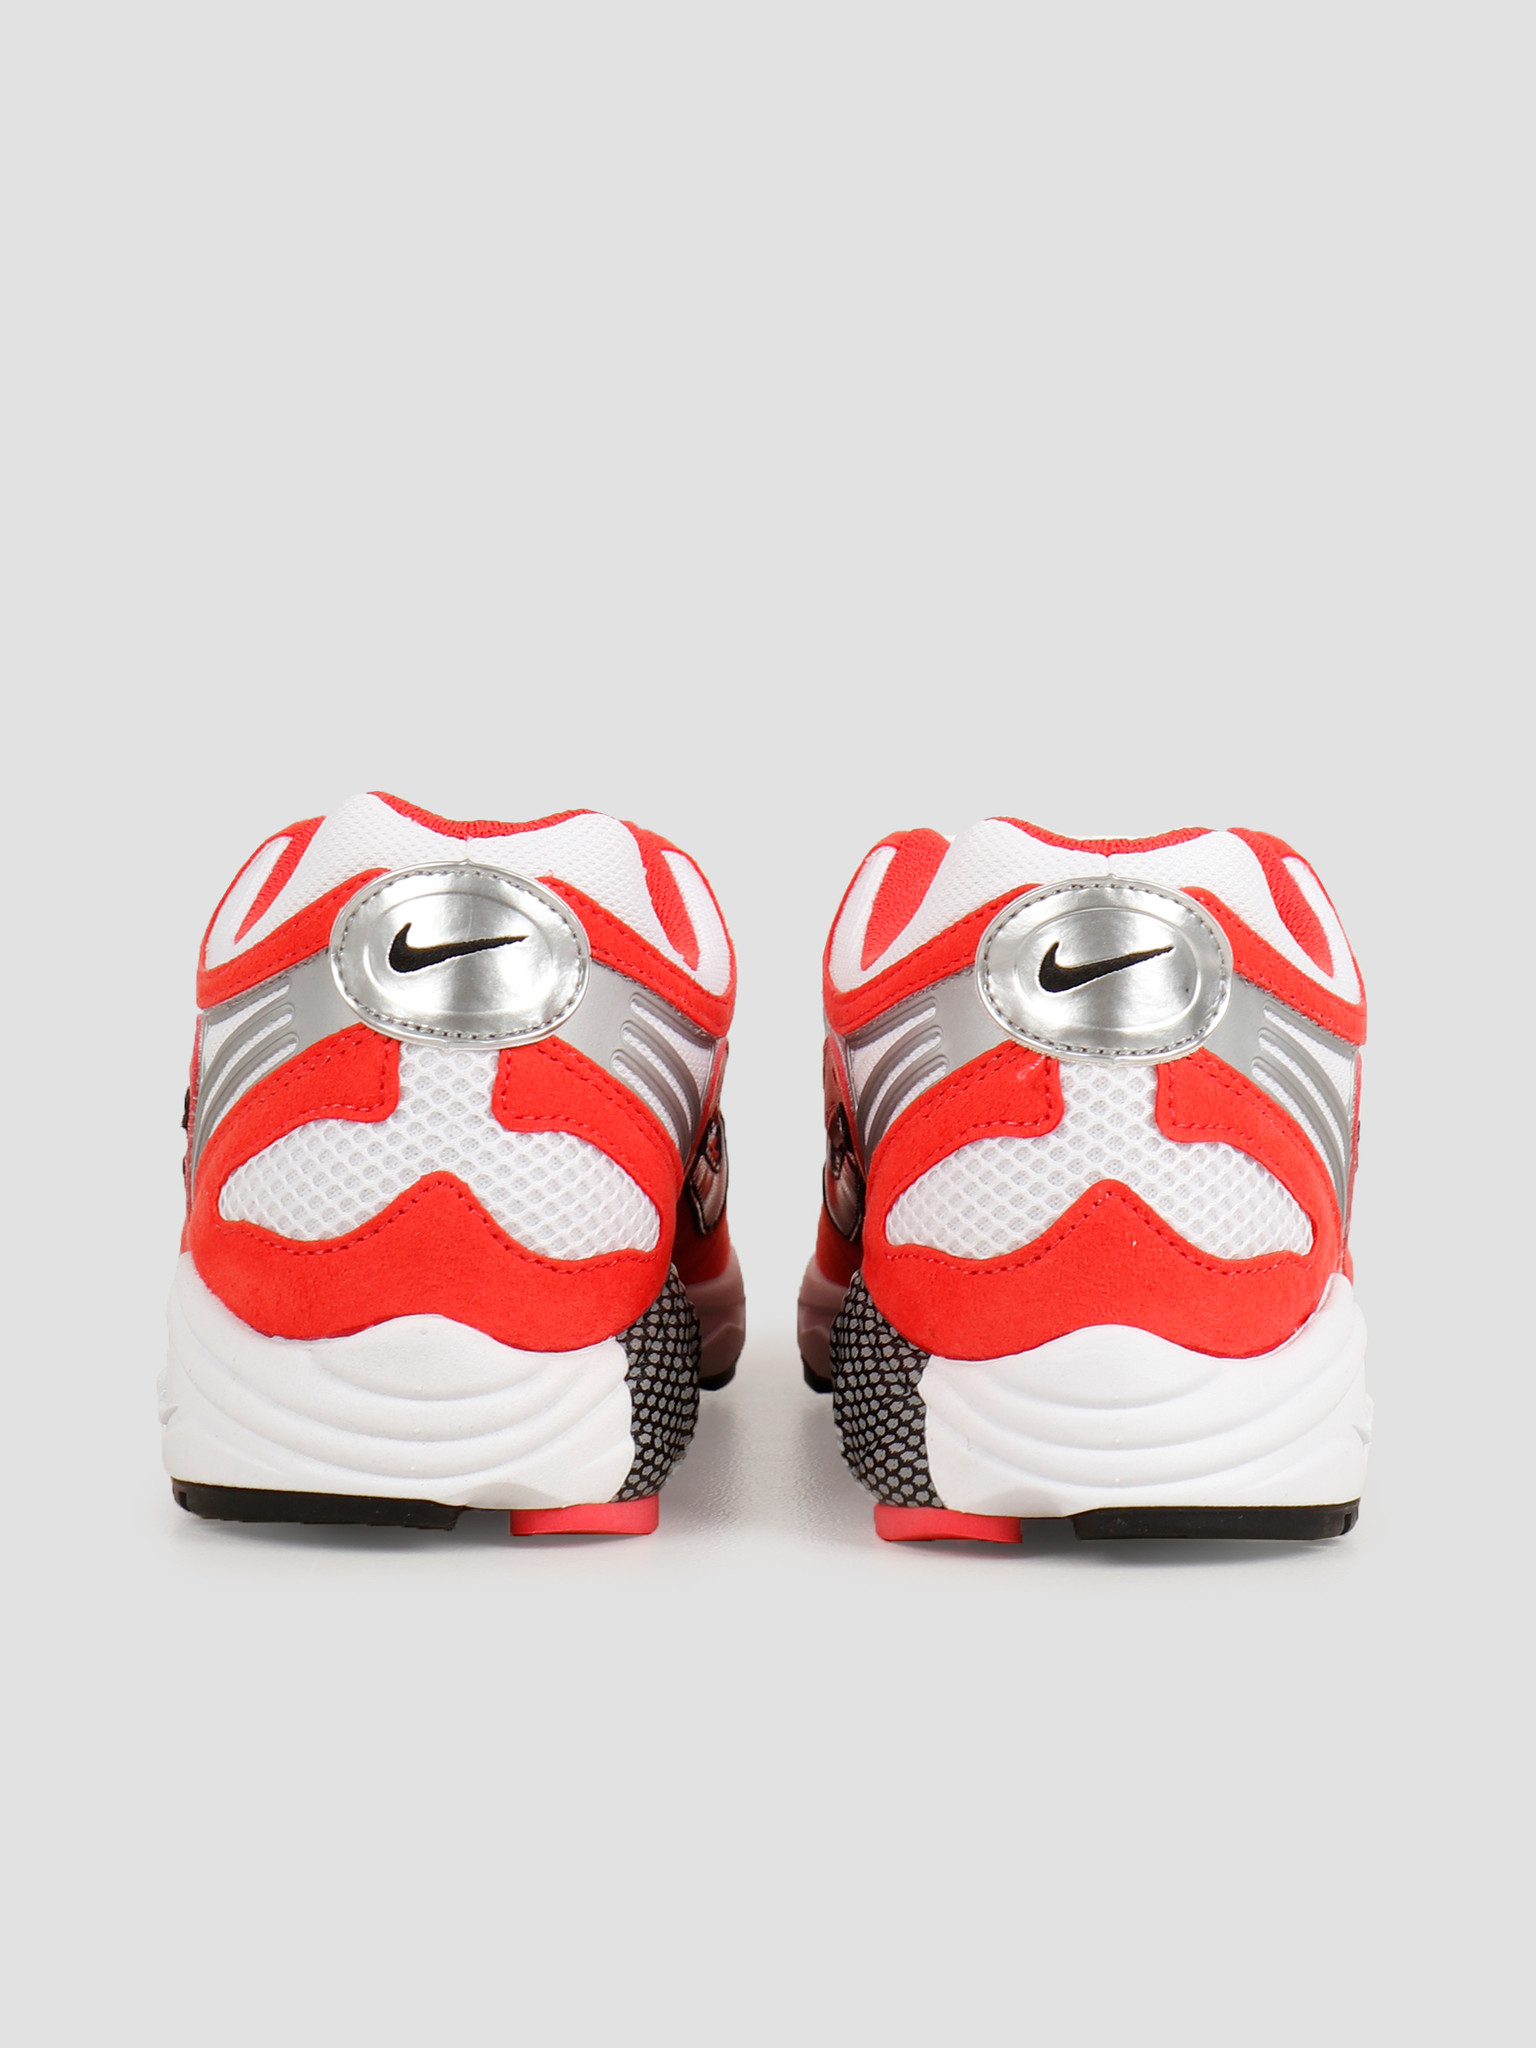 Nike Nike Air Ghost Racer Track Red Black White Metallic Silver AT5410-601